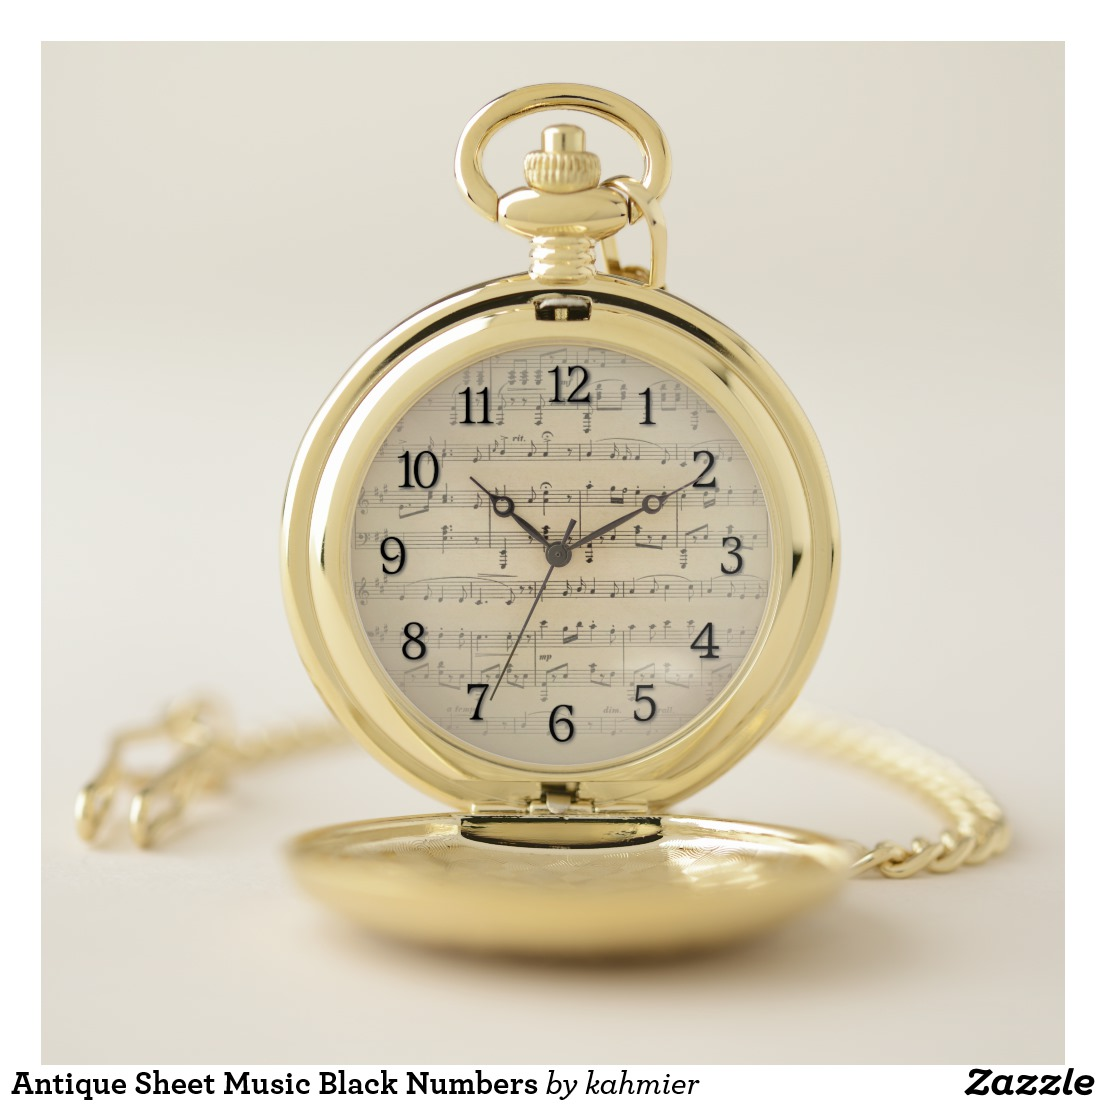 Antique Sheet Music Black Numbers Pocket Watch